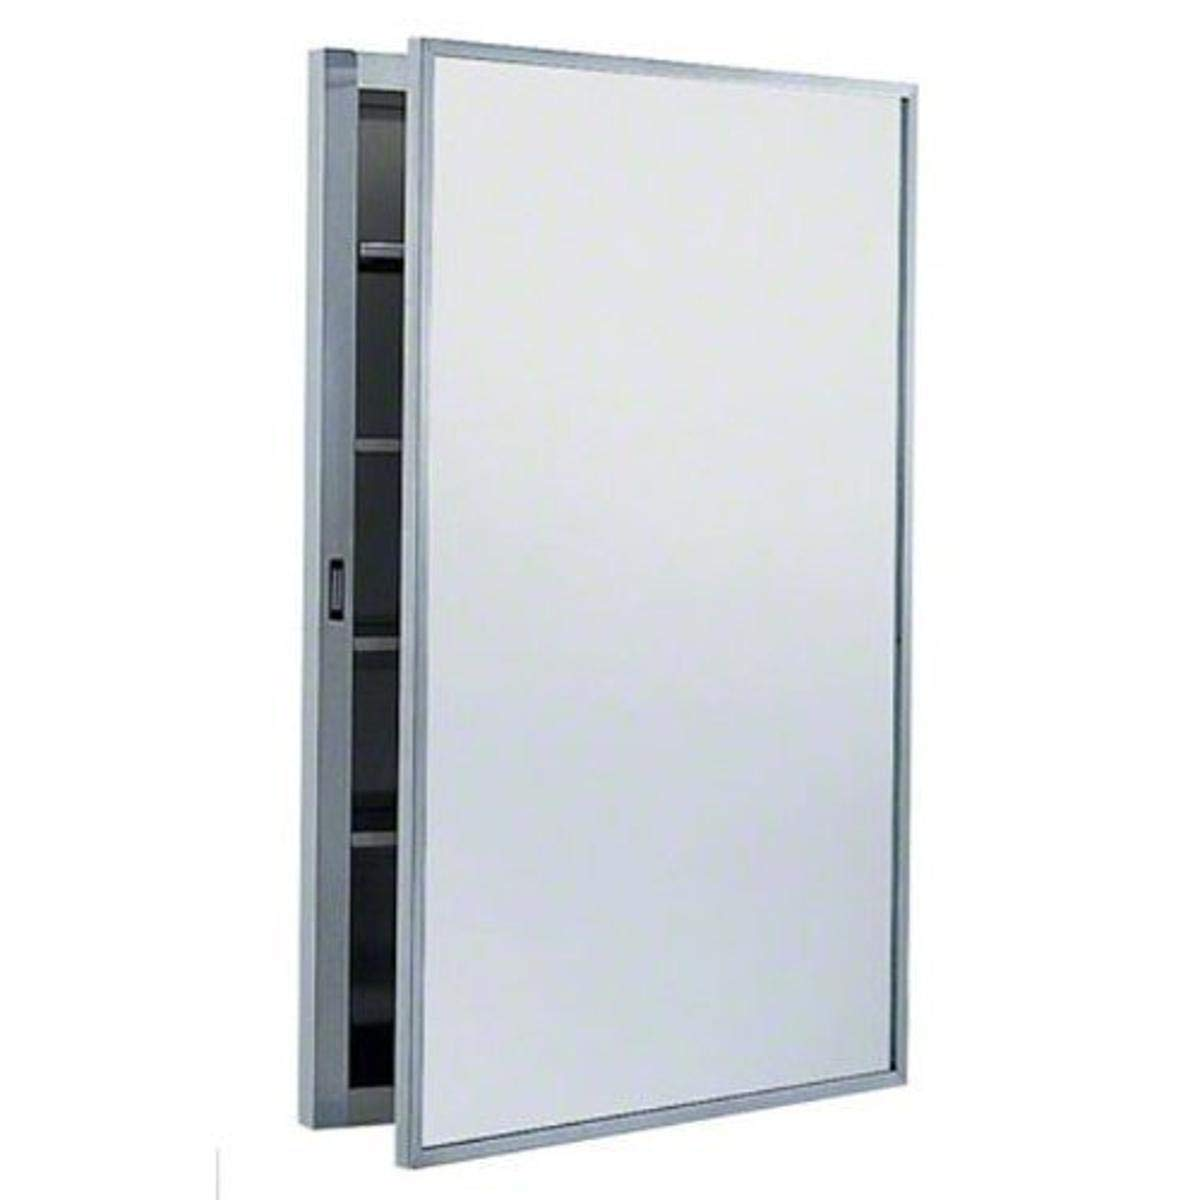 Bobrick Sale special price 299 304 Stainless Cabinet Medicine Surface-Mounted Limited Special Price Steel